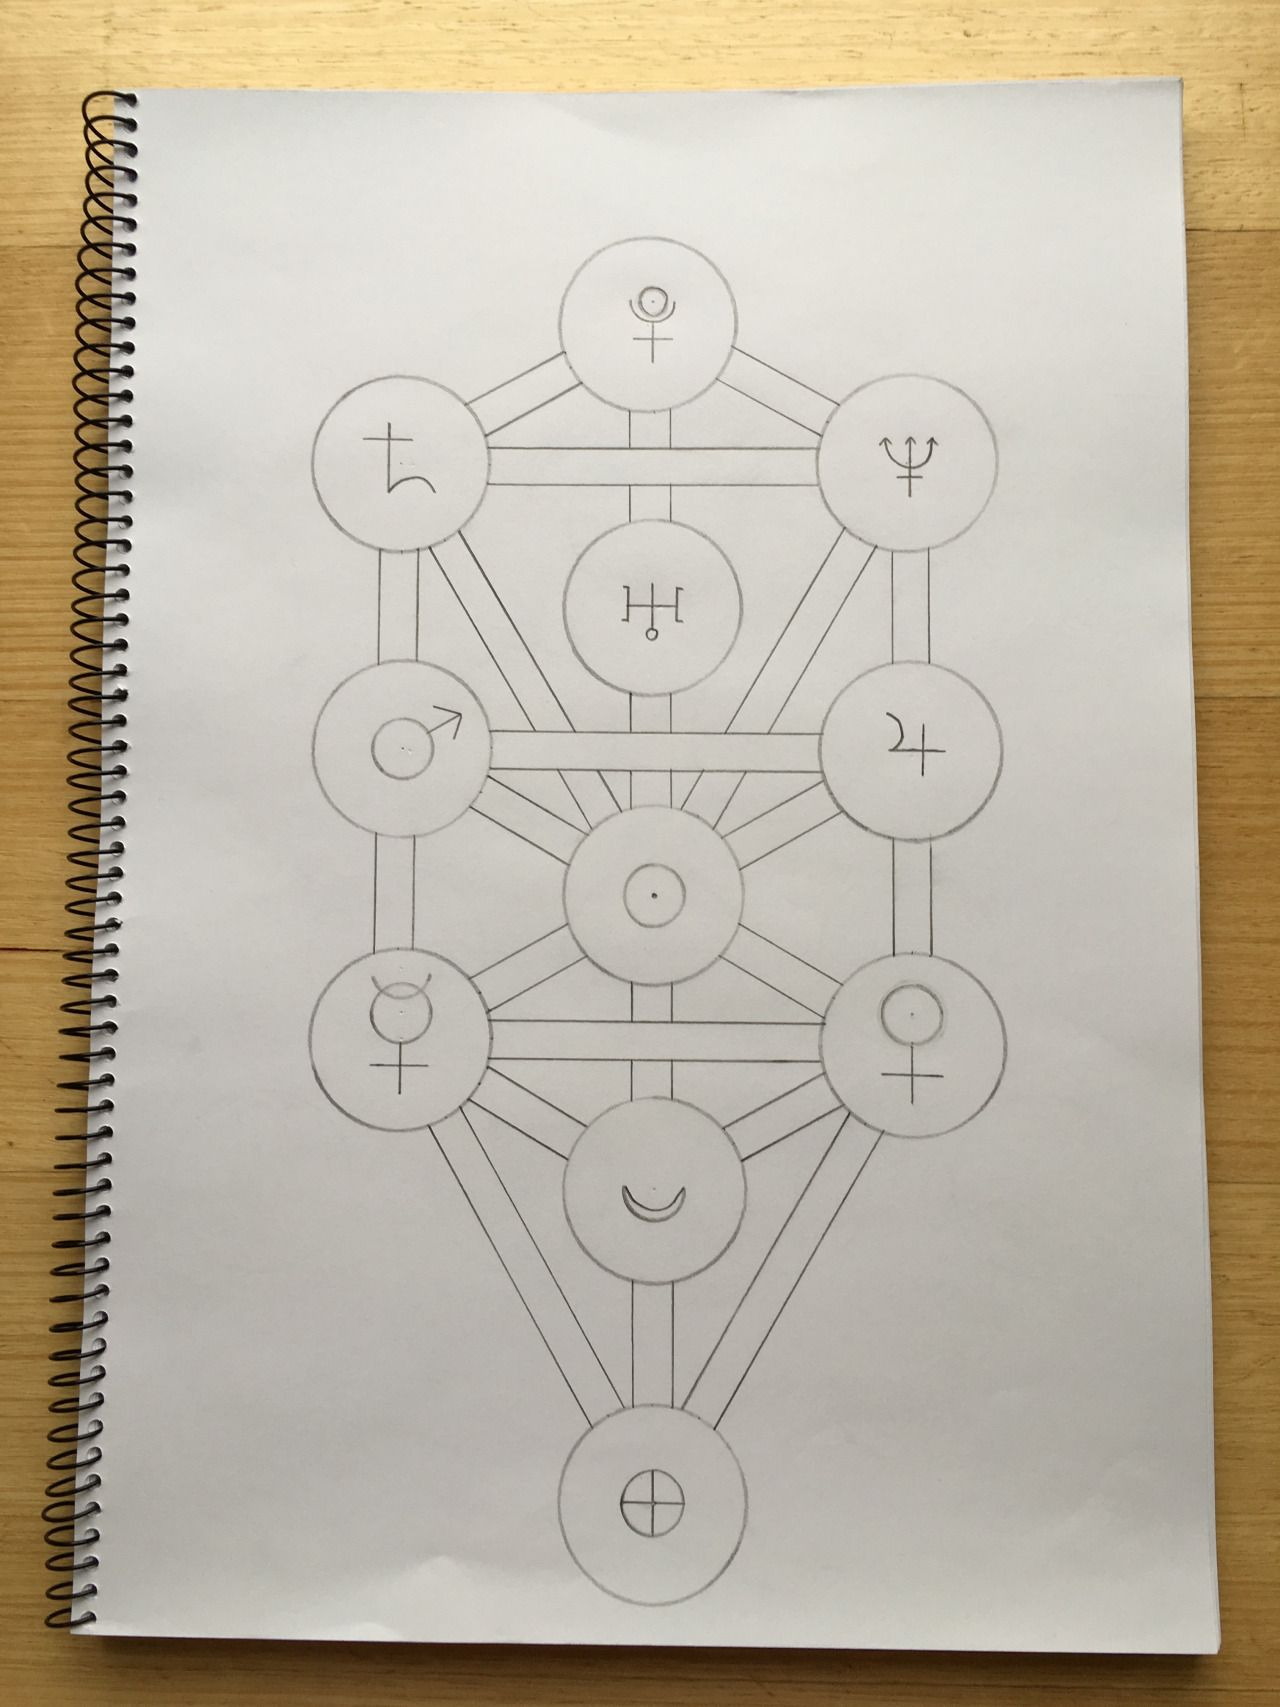 hight resolution of kabbalistic tree of life this diagram can be used as a map of whatever system you are working with whether the microcosm yourself or the macrocosm the